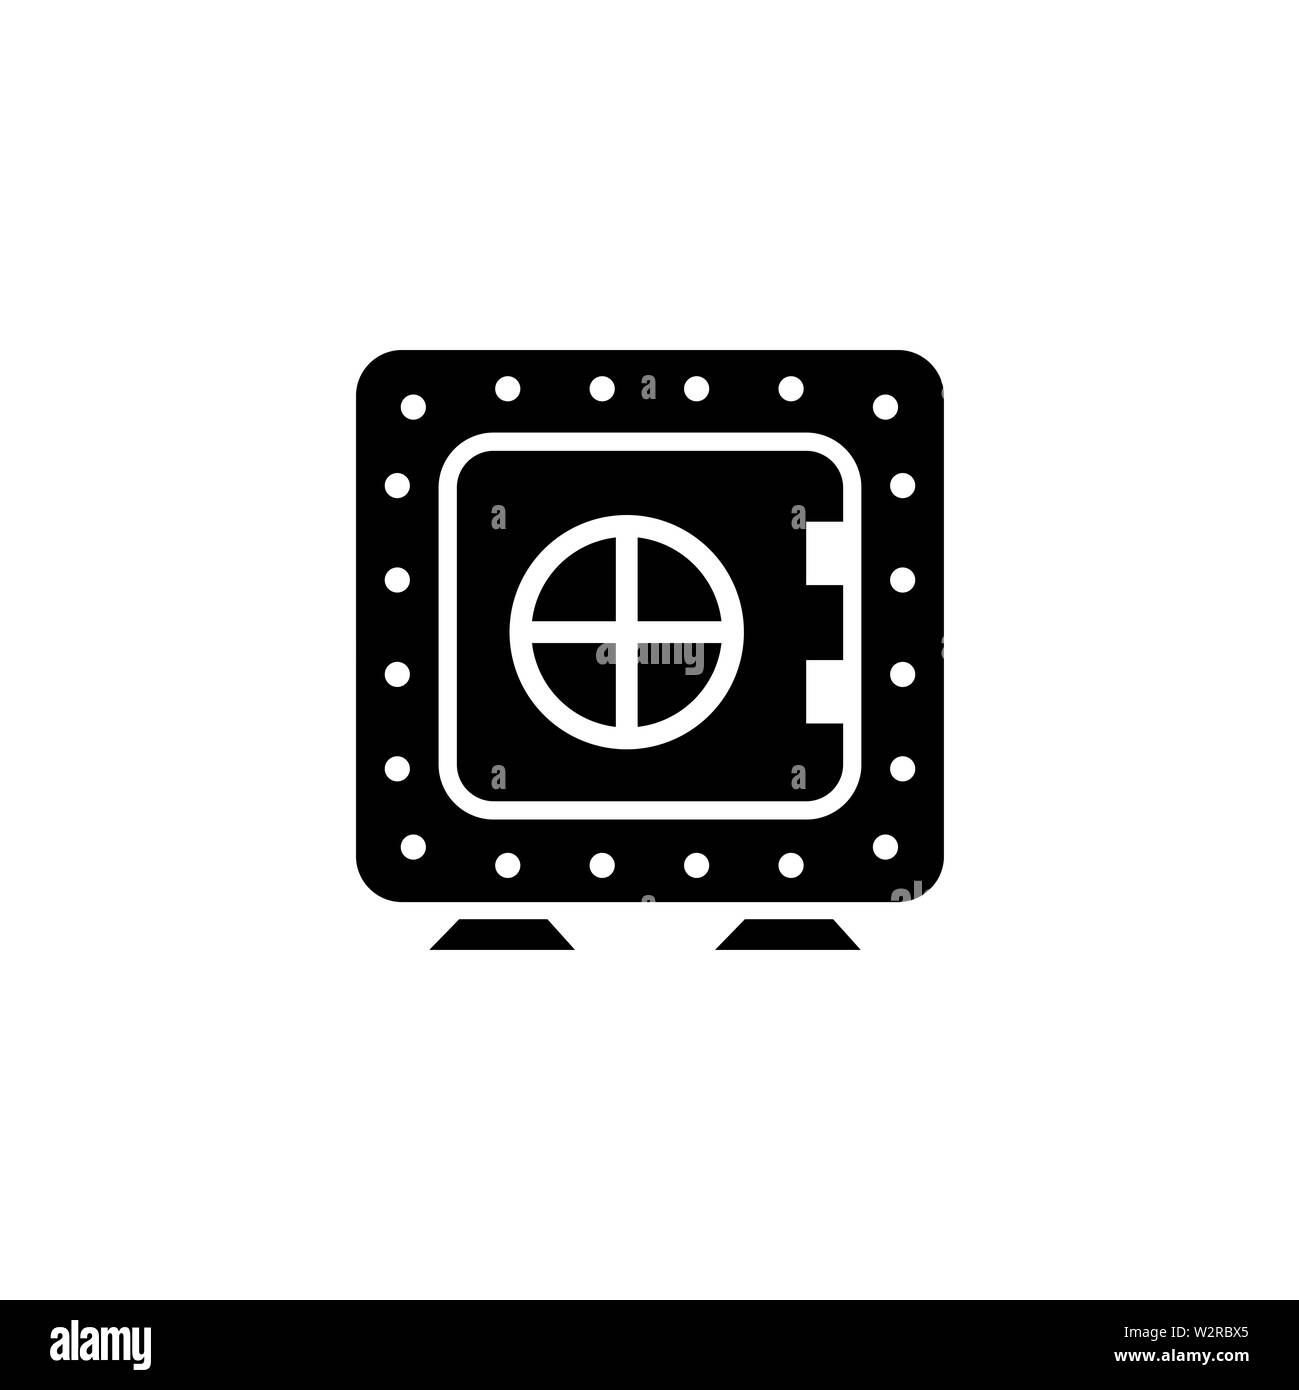 Vault Icon In Flat Style Vector For Apps, UI, Websites. Black Icon Vector Illustration. - Stock Image